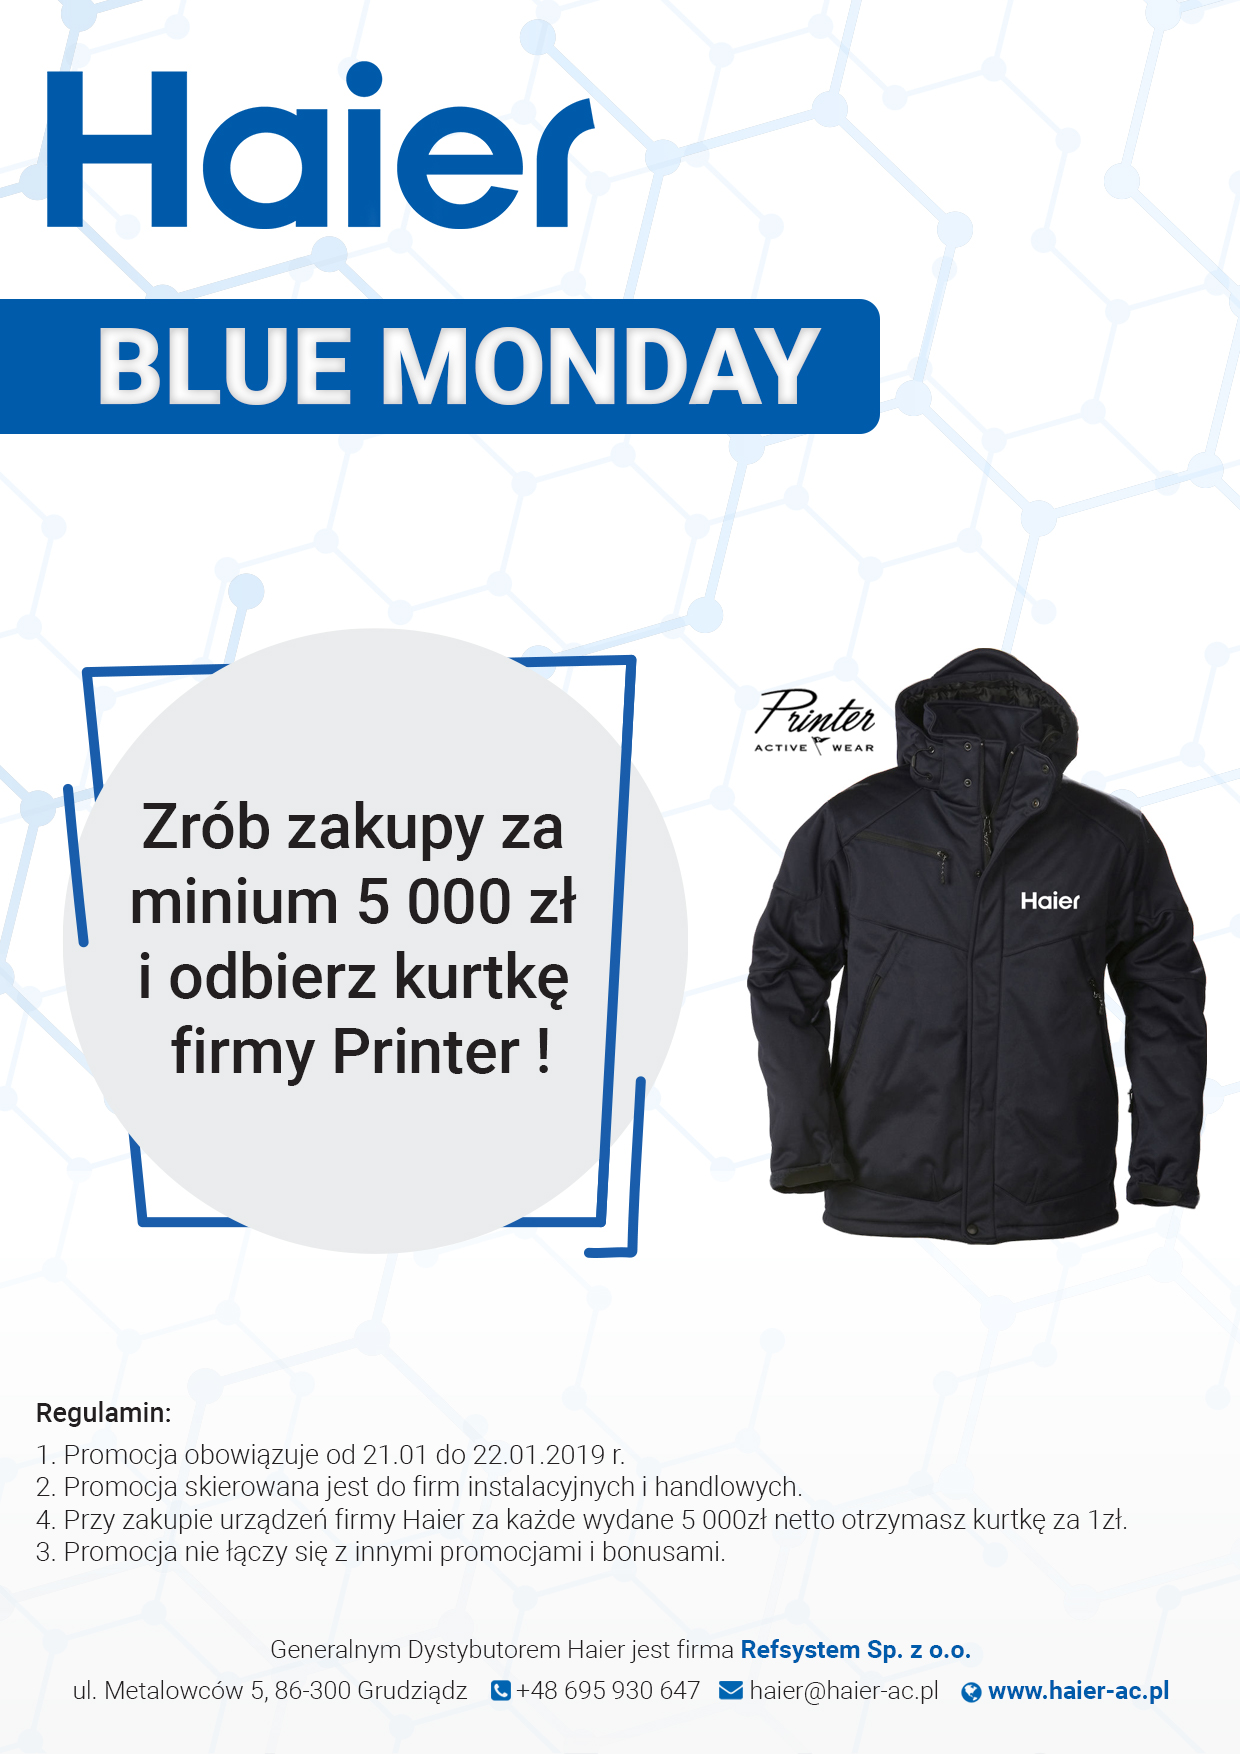 HAIER Blue Monday